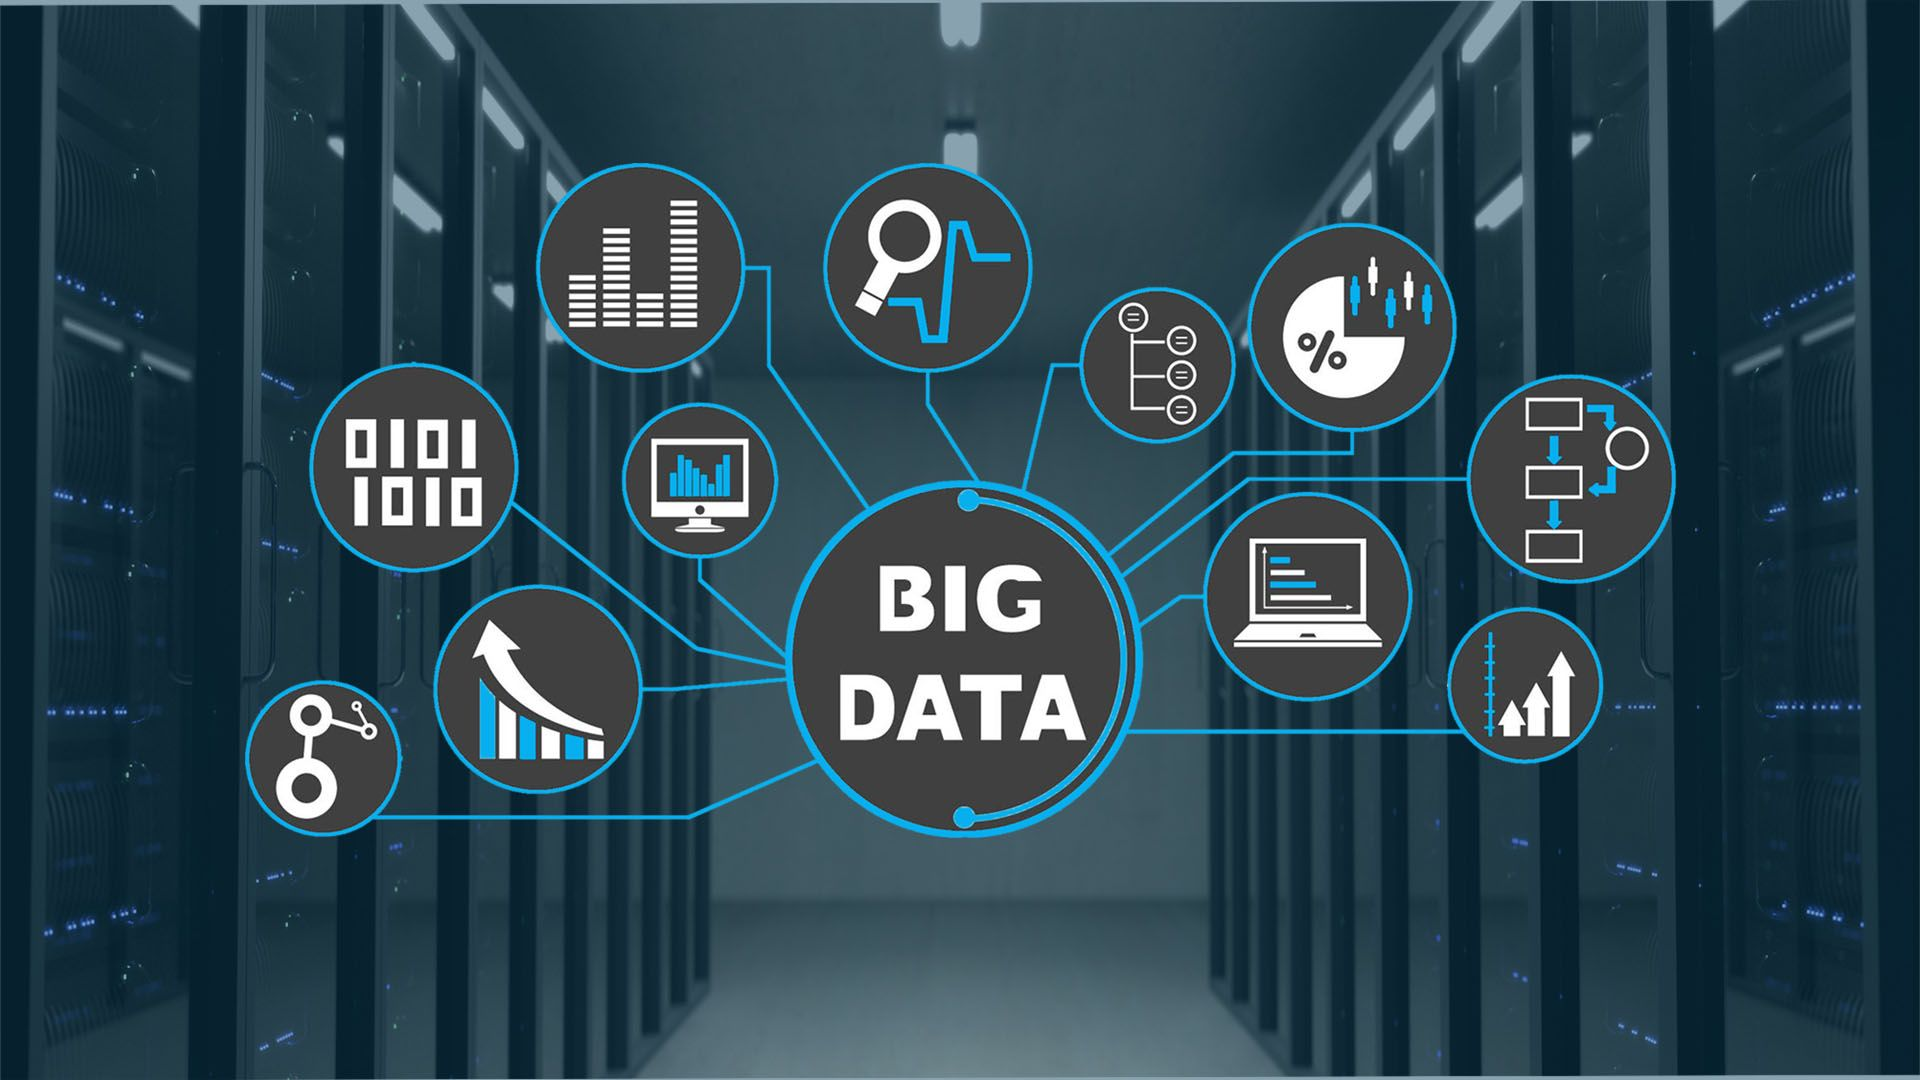 What are the best reasons to learn big data?